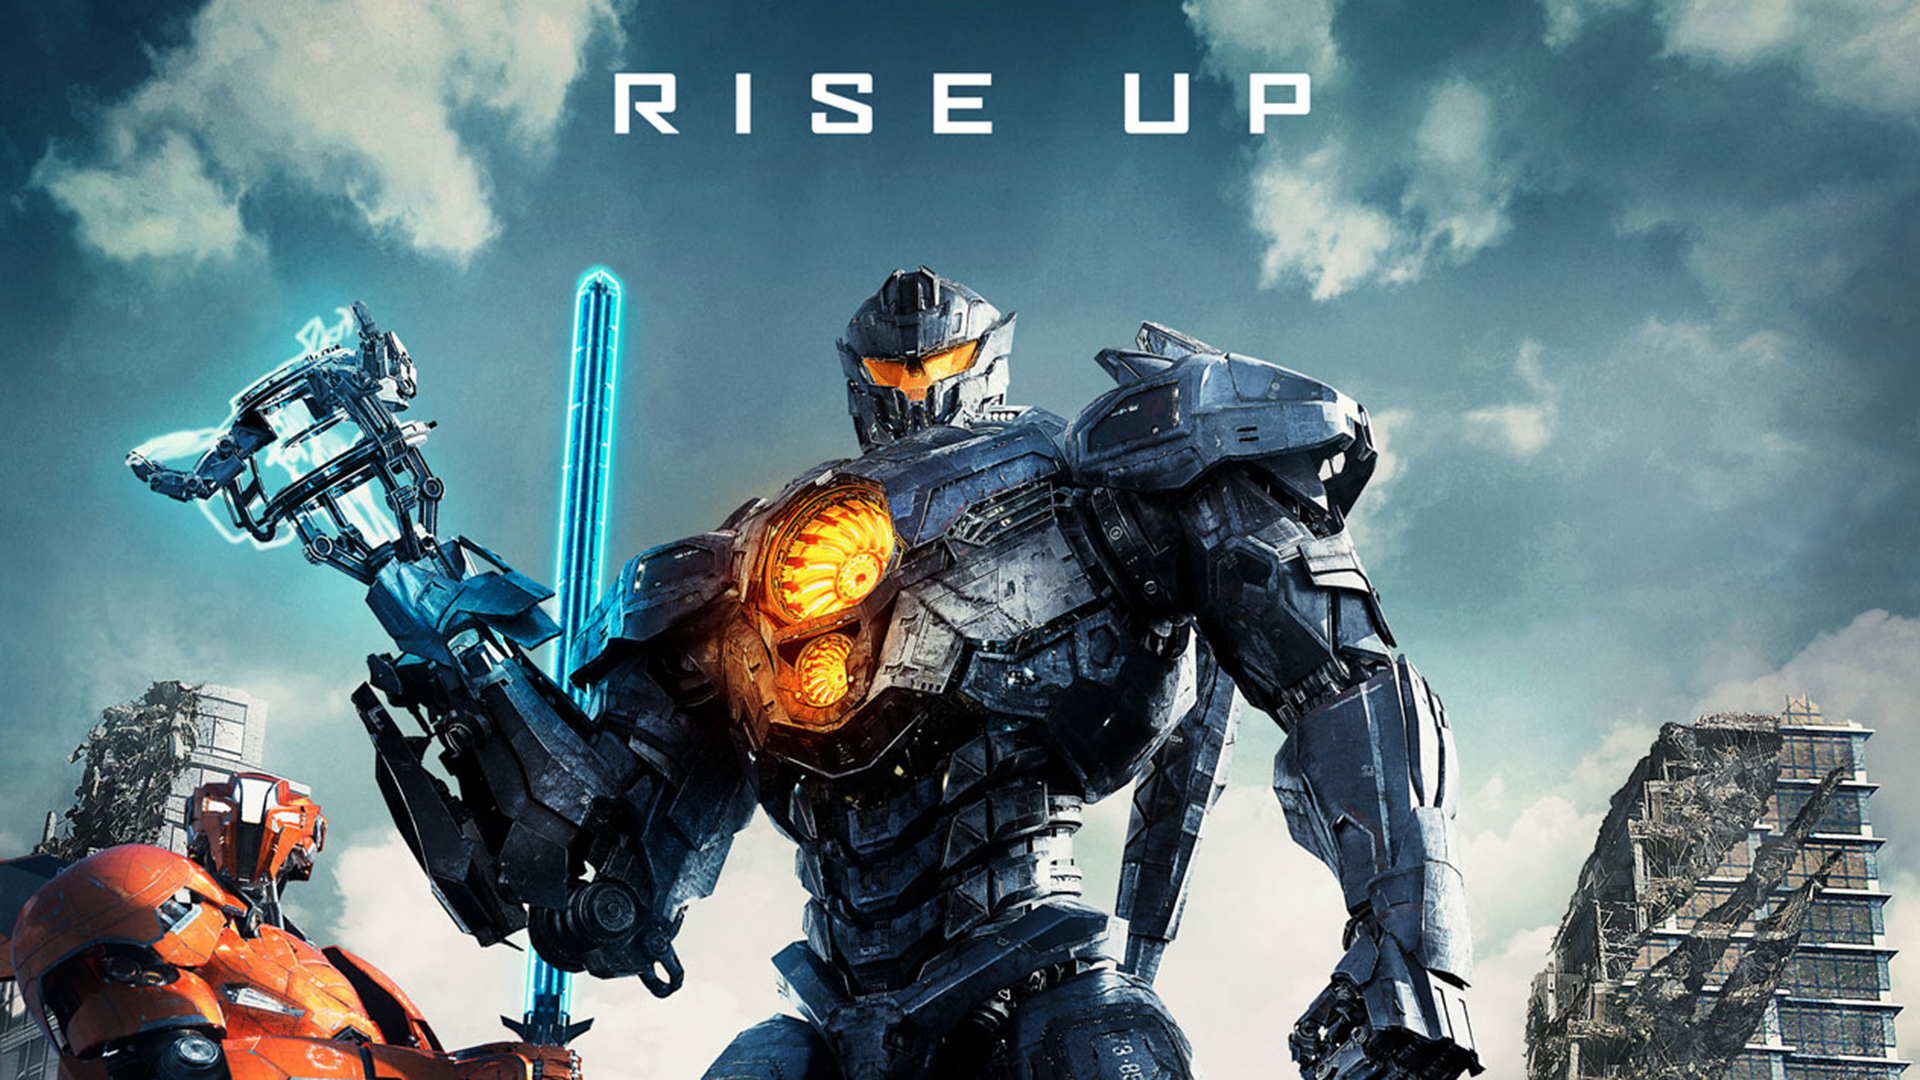 Download wallpapers Pacific Rim Uprising poster all